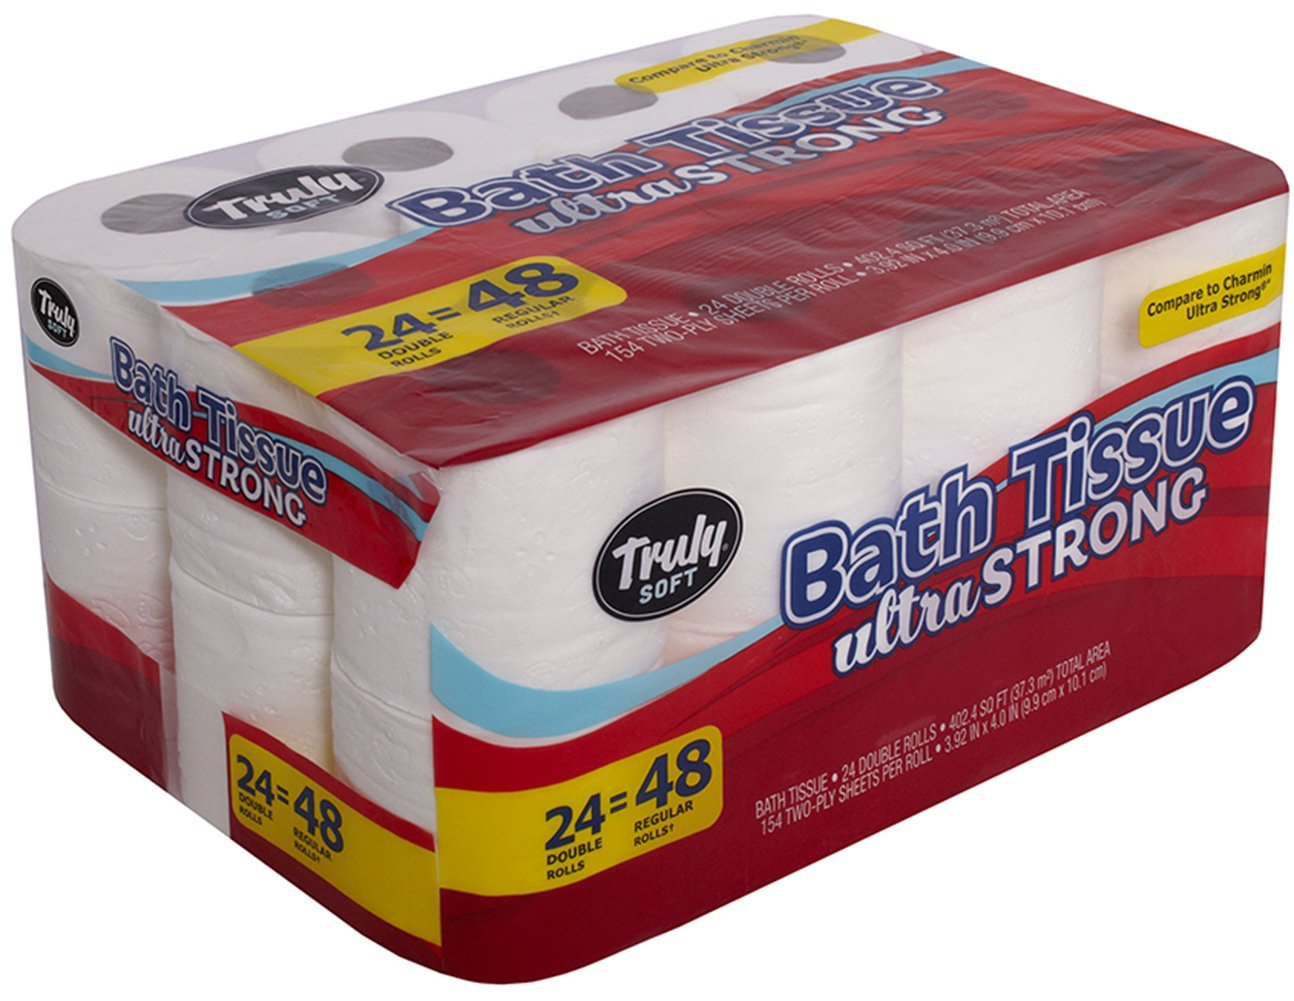 Truly Soft Toilet Paper Ultra Strong Bath Tissue, 24 Double Rolls = 48 Regular Rolls, White